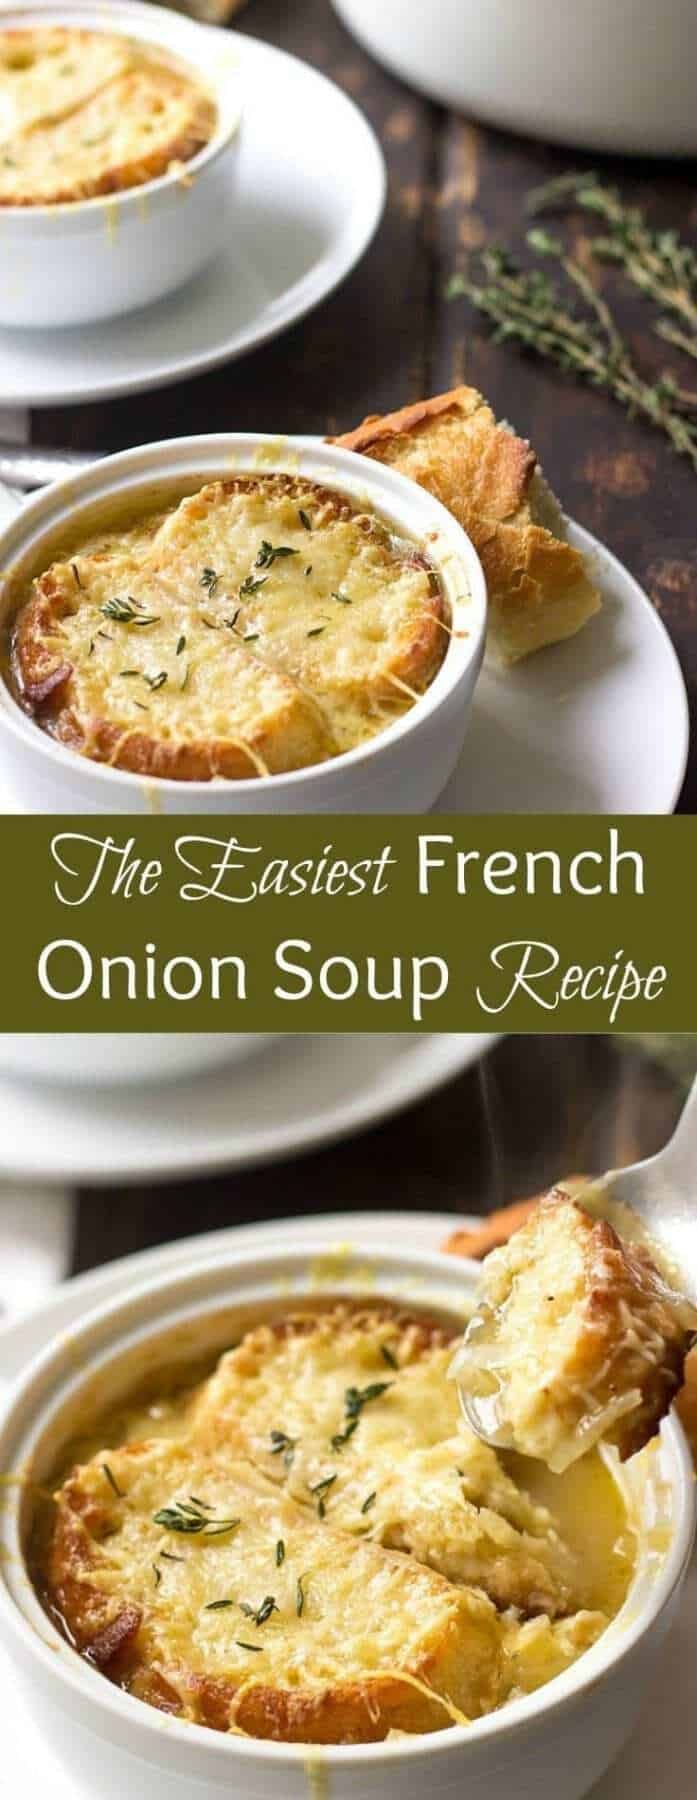 This Easy French Onion Soup is a crowd-pleaser. It's loaded with flavor from caramelised onions and melty cheese. If you ever wanted to learn how to make French Onion Soup, this is the only recipe that you need.